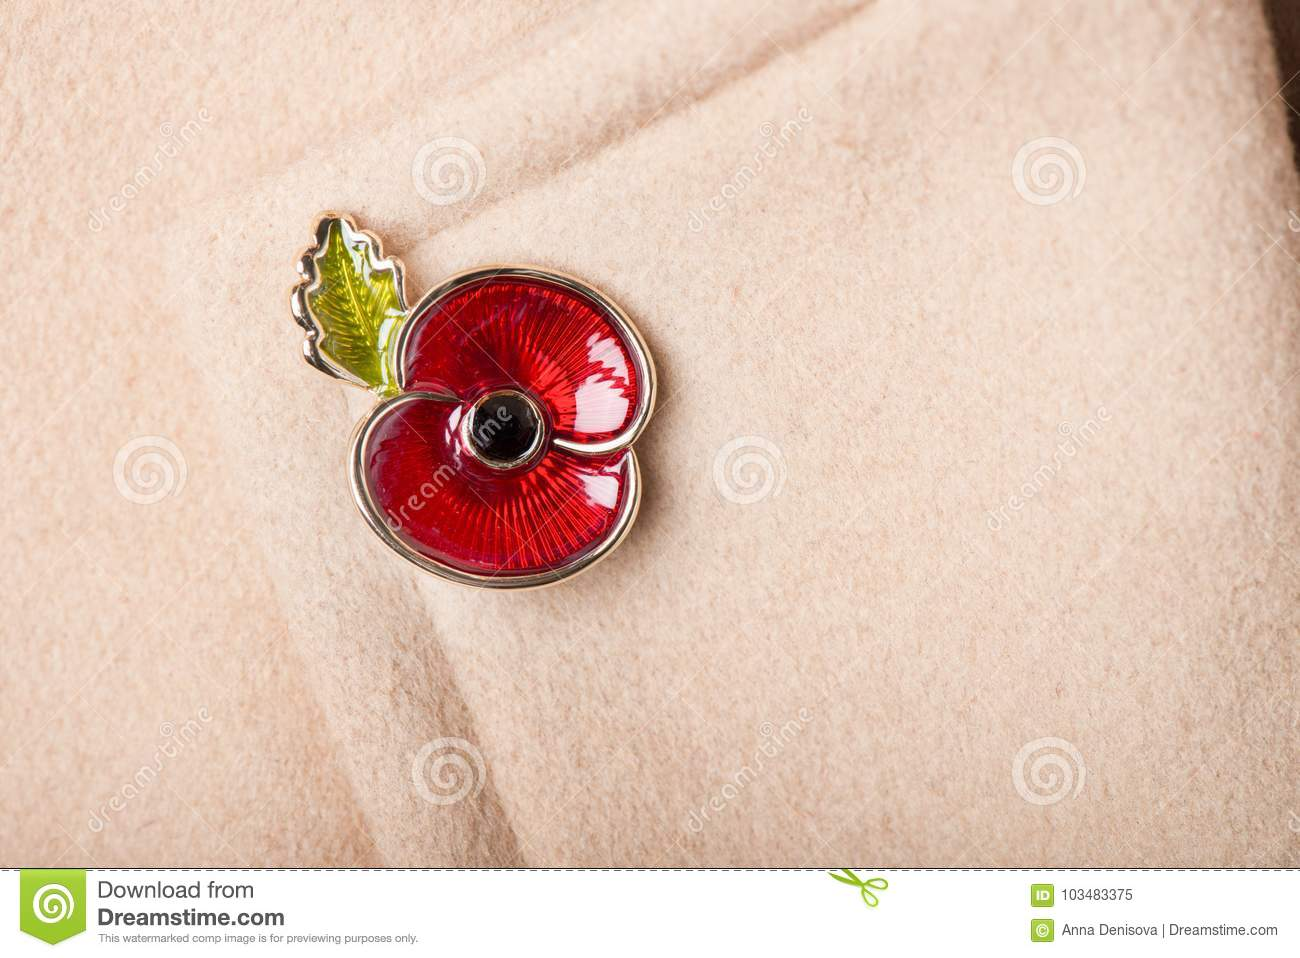 Red Poppy Pin As A Symbol Of Remembrance Day Stock Image Image Of